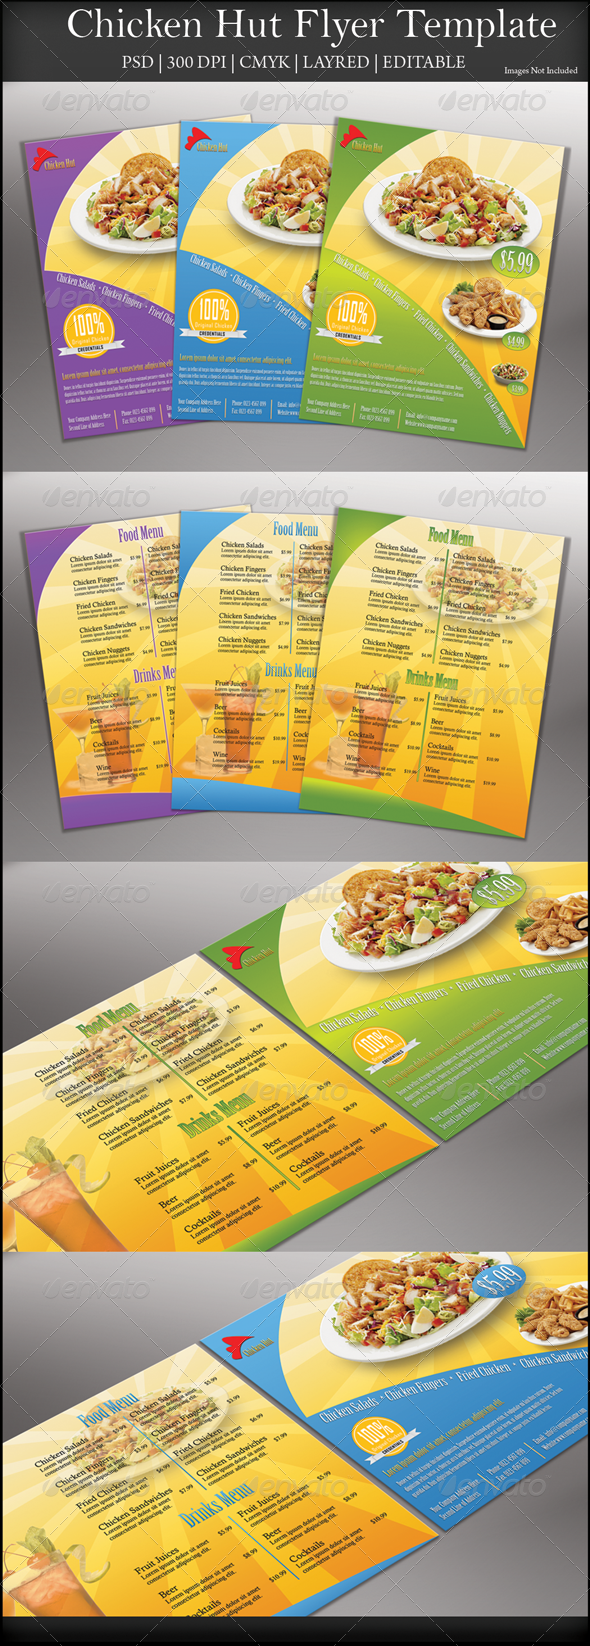 Chicken Hut Flyer - Restaurant Flyers